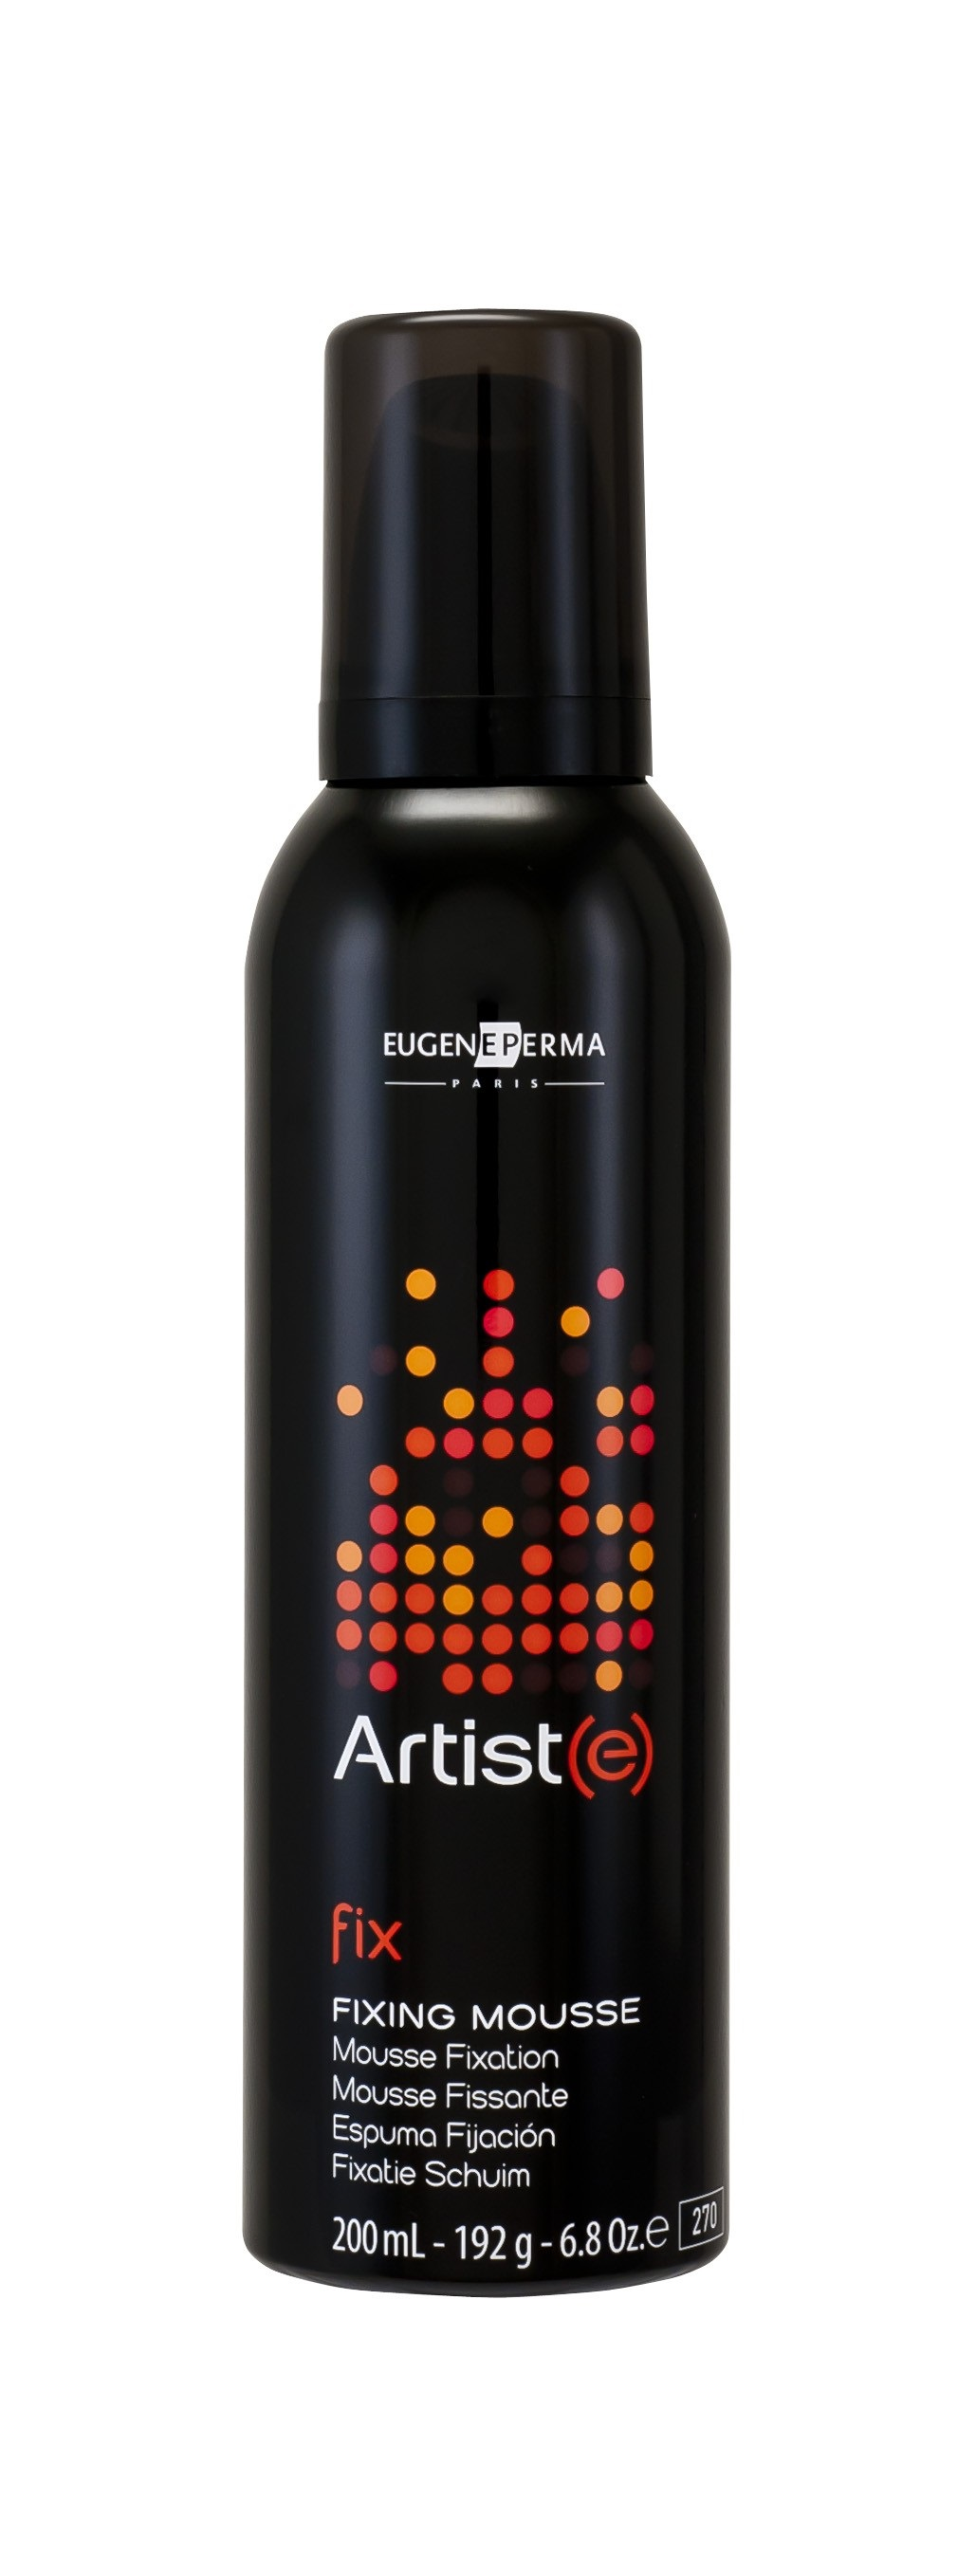 EUGENE PERMA ARTISTE FIXING MOUSSE 200ML